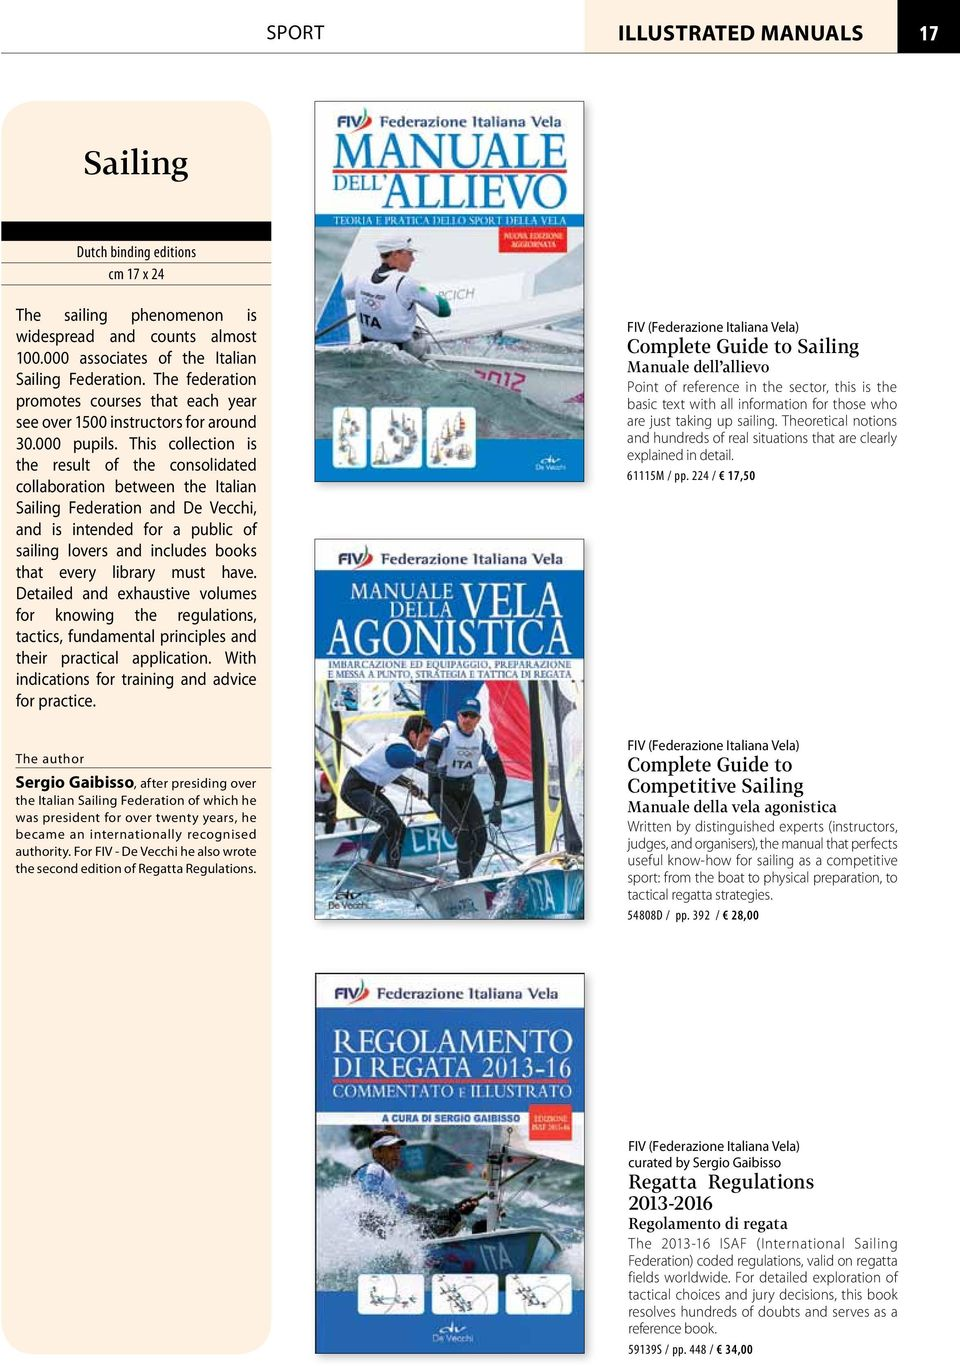 This collection is the result of the consolidated collaboration between the Italian Sailing Federation and De Vecchi, and is intended for a public of sailing lovers and includes books that every